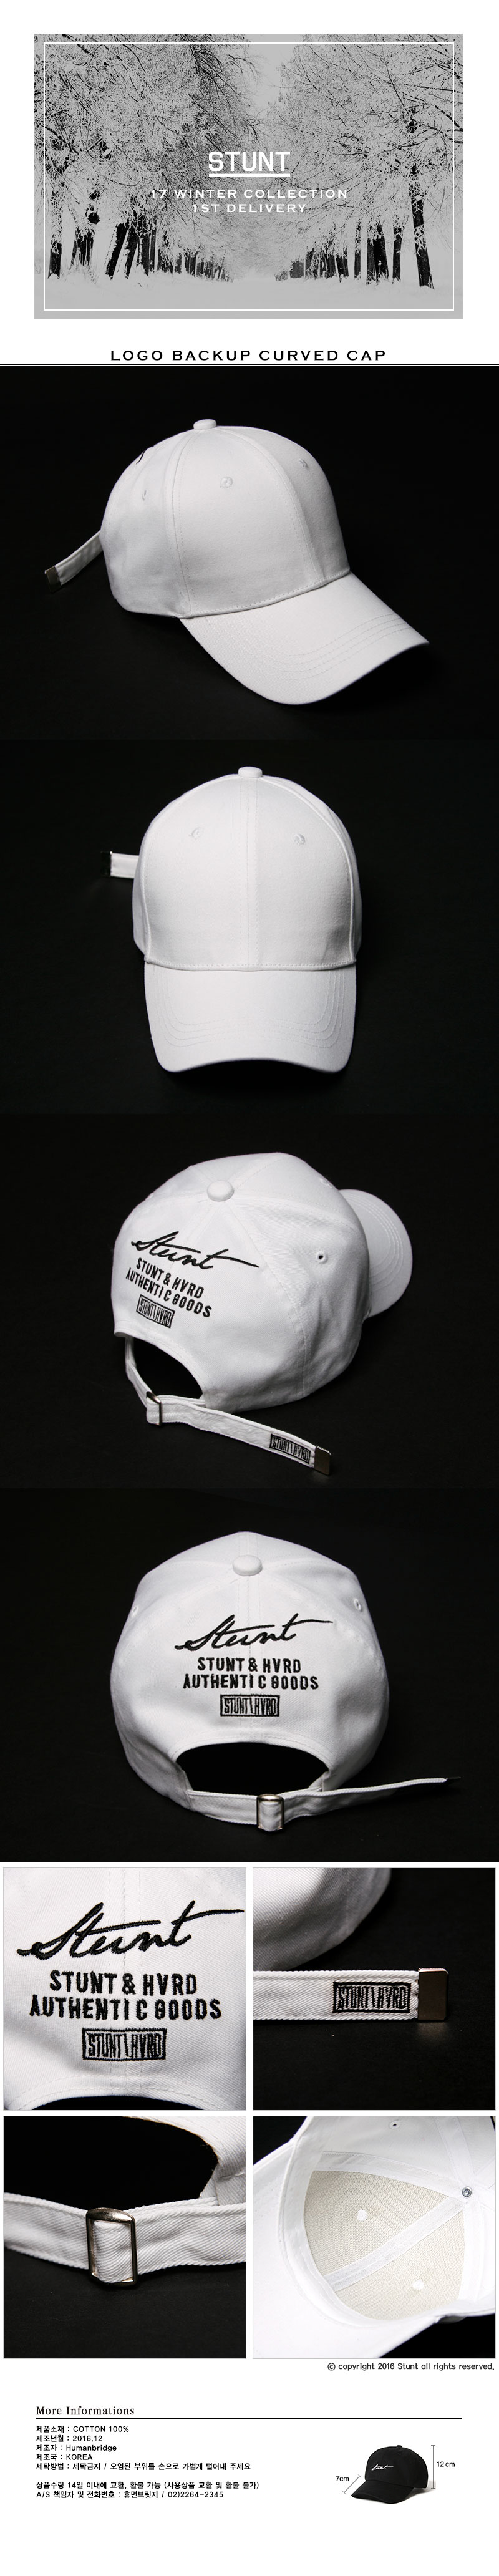 logo-backup-curved-cap-(white).jpg